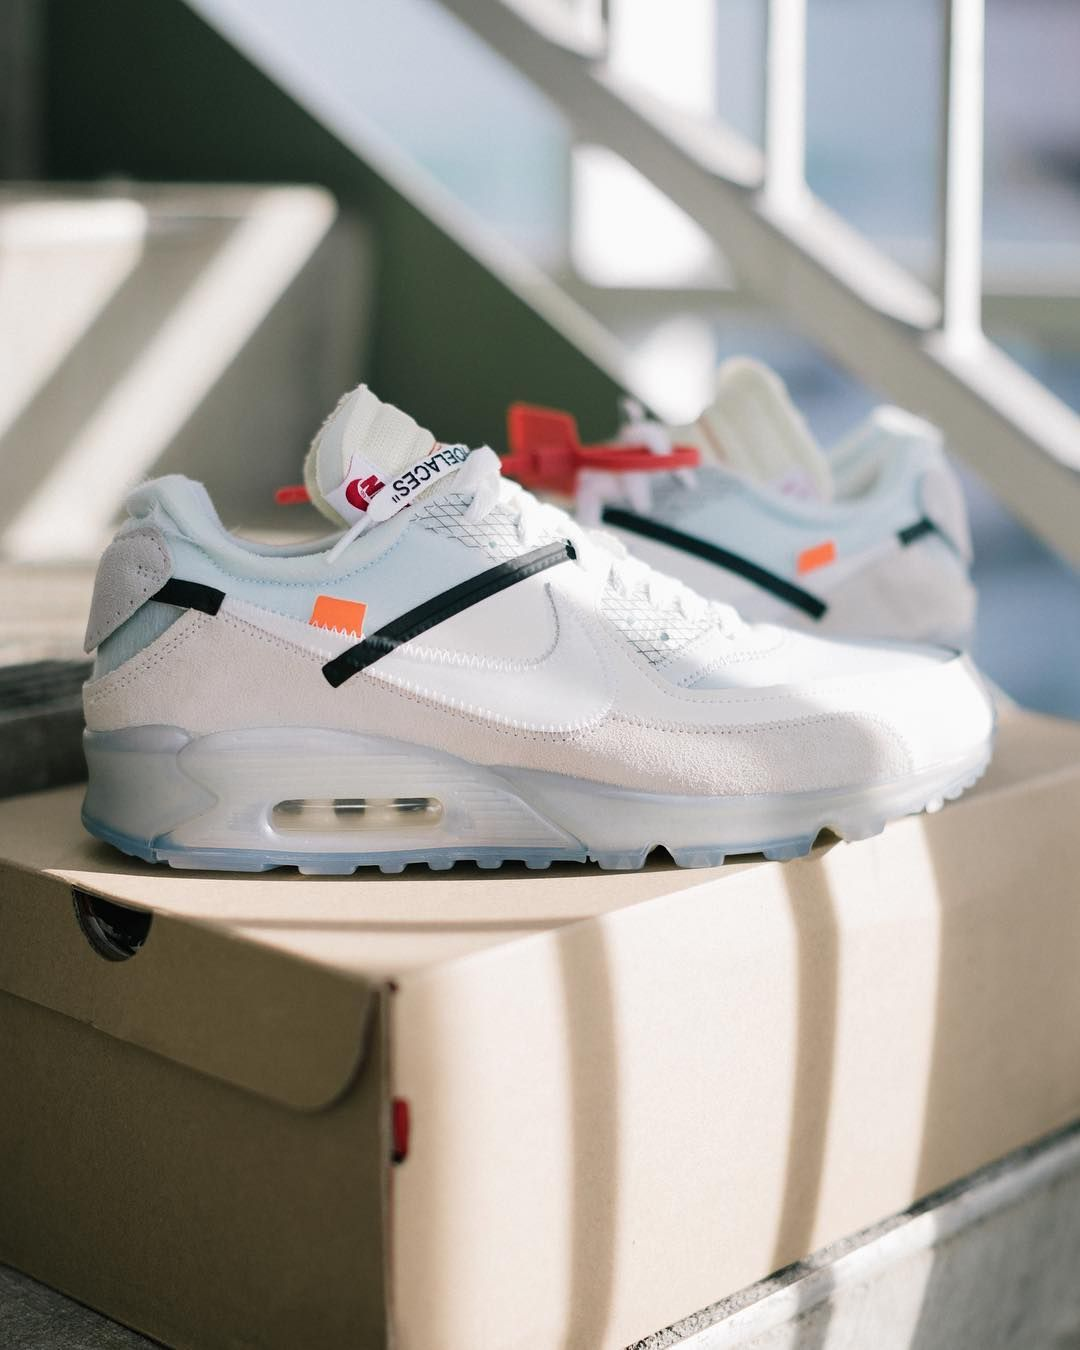 c033a79b What's your favorite Off-White x Nike release? #airmaxmondays  #verifiedauthe tic #StockX